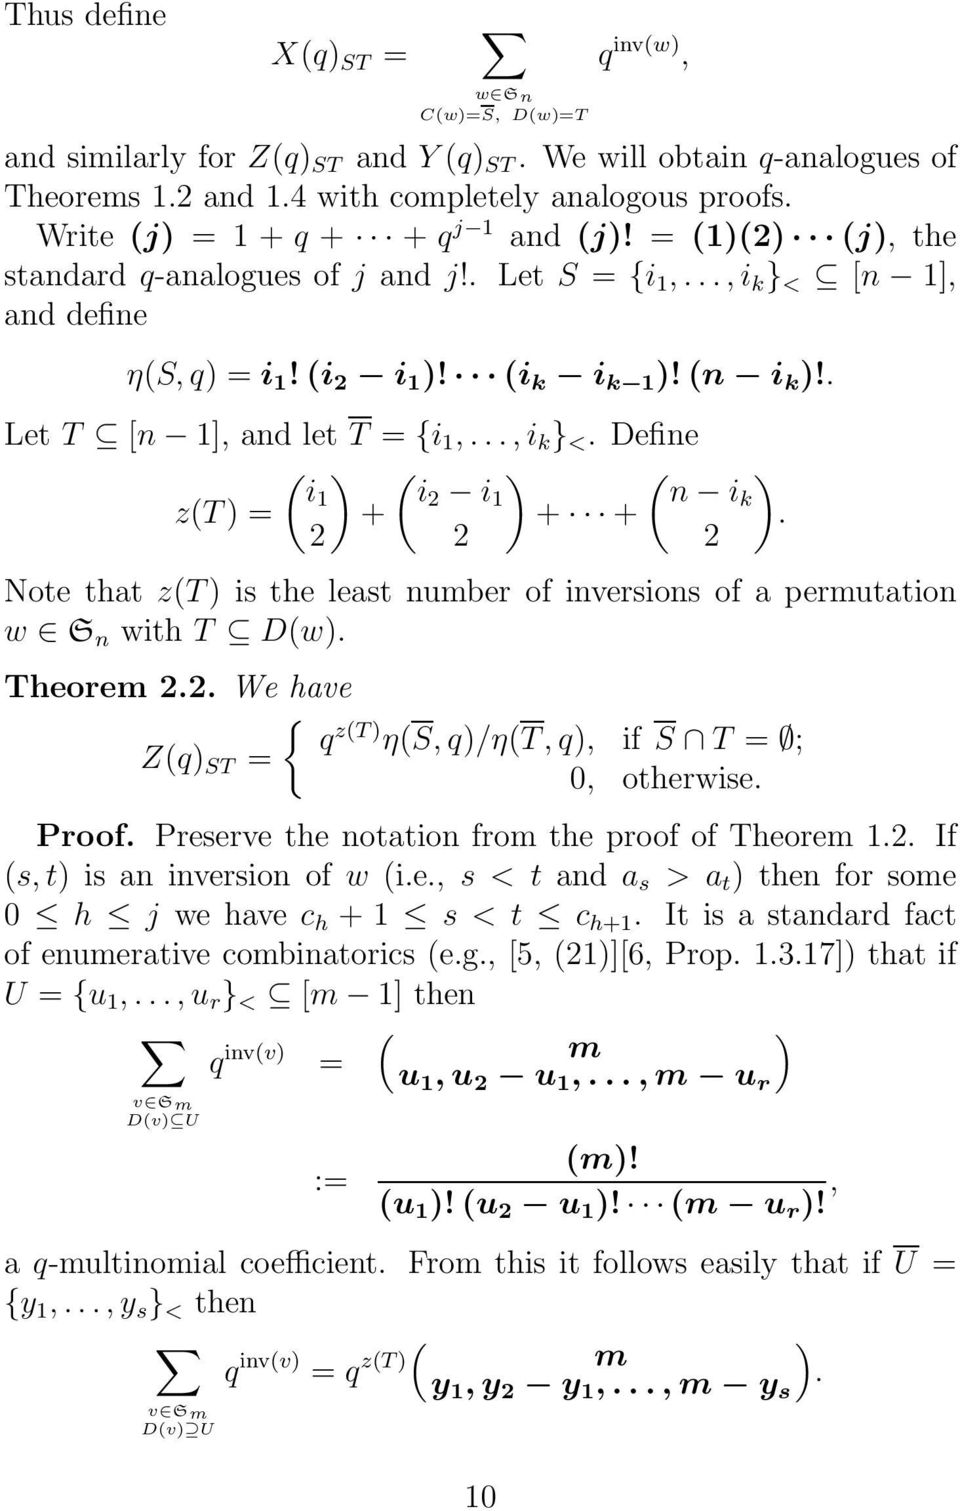 . Let T [n 1], and let T = {i 1,...,i k } <. Define ( ) ( ) ( ) i1 i2 i 1 n ik z(t) = + + +. 2 2 2 Note that z(t) is the least number of inversions of a permutation w S n with T D(w). Theorem 2.2. We have { q Z(q) ST = z(t) η(s, q)/η(t, q), if S T = ; 0, otherwise.